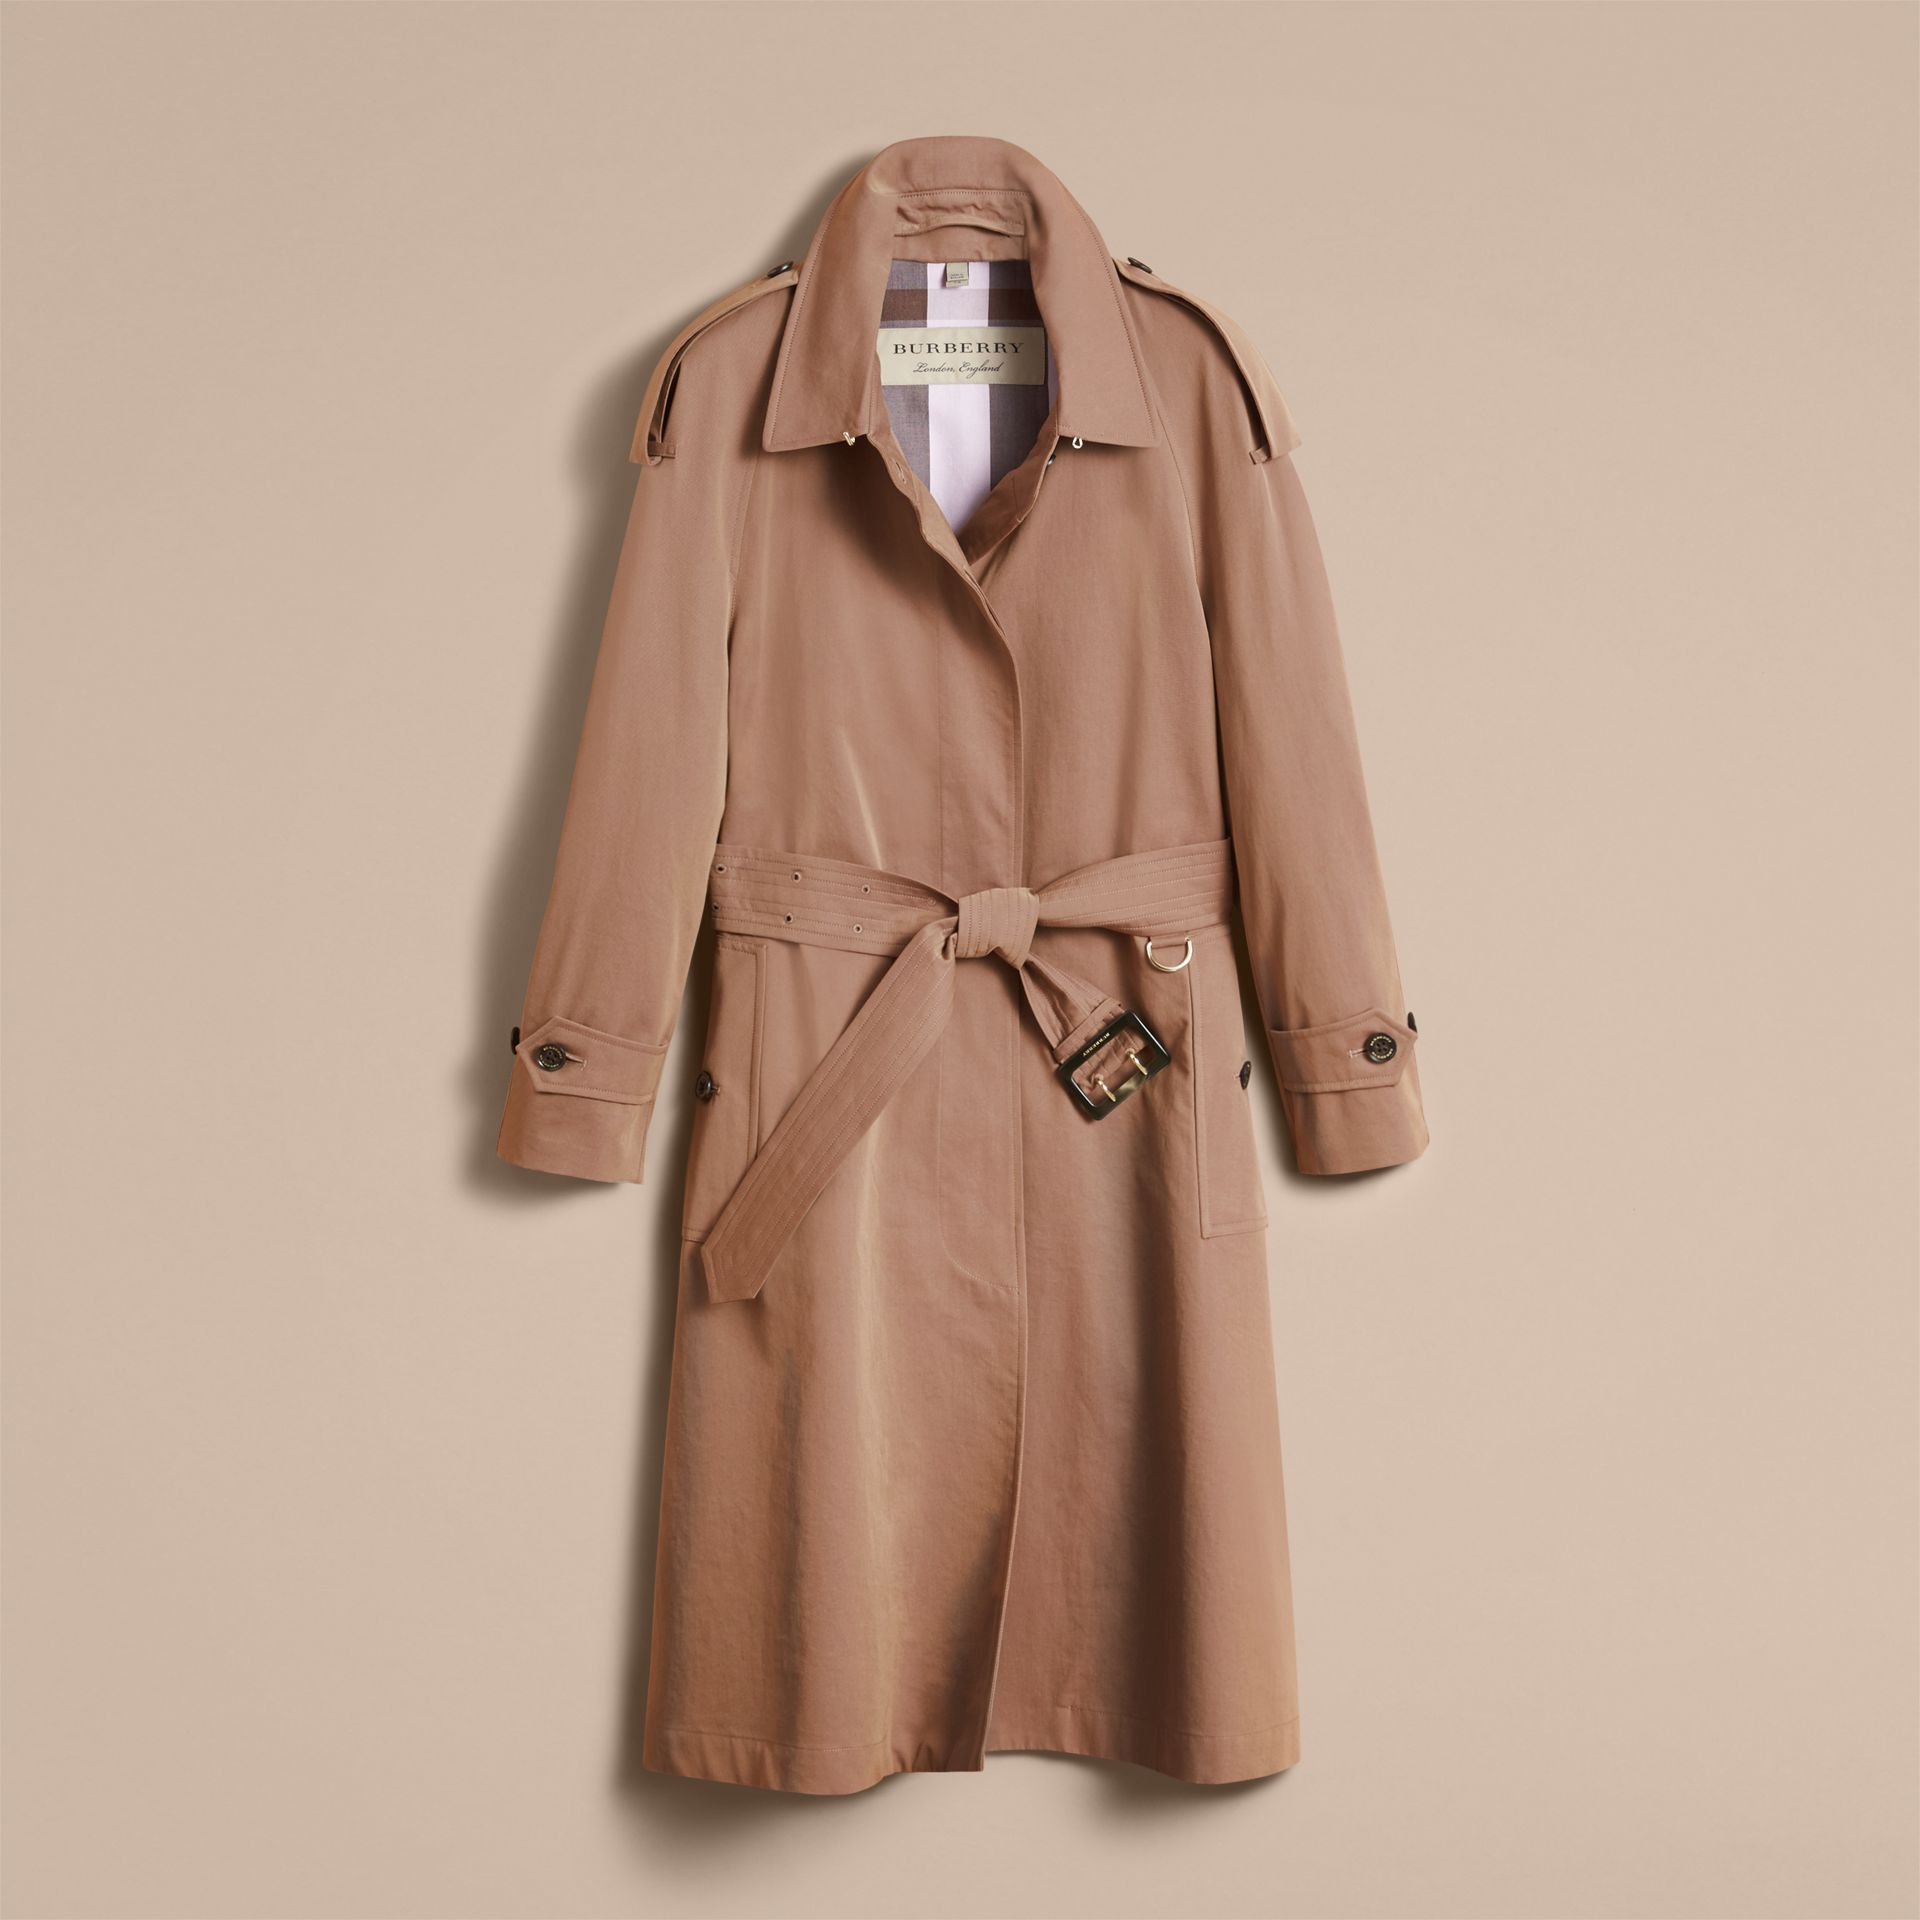 Tropical Gabardine Trench Coat in Taupe - Women | Burberry Singapore - gallery image 4